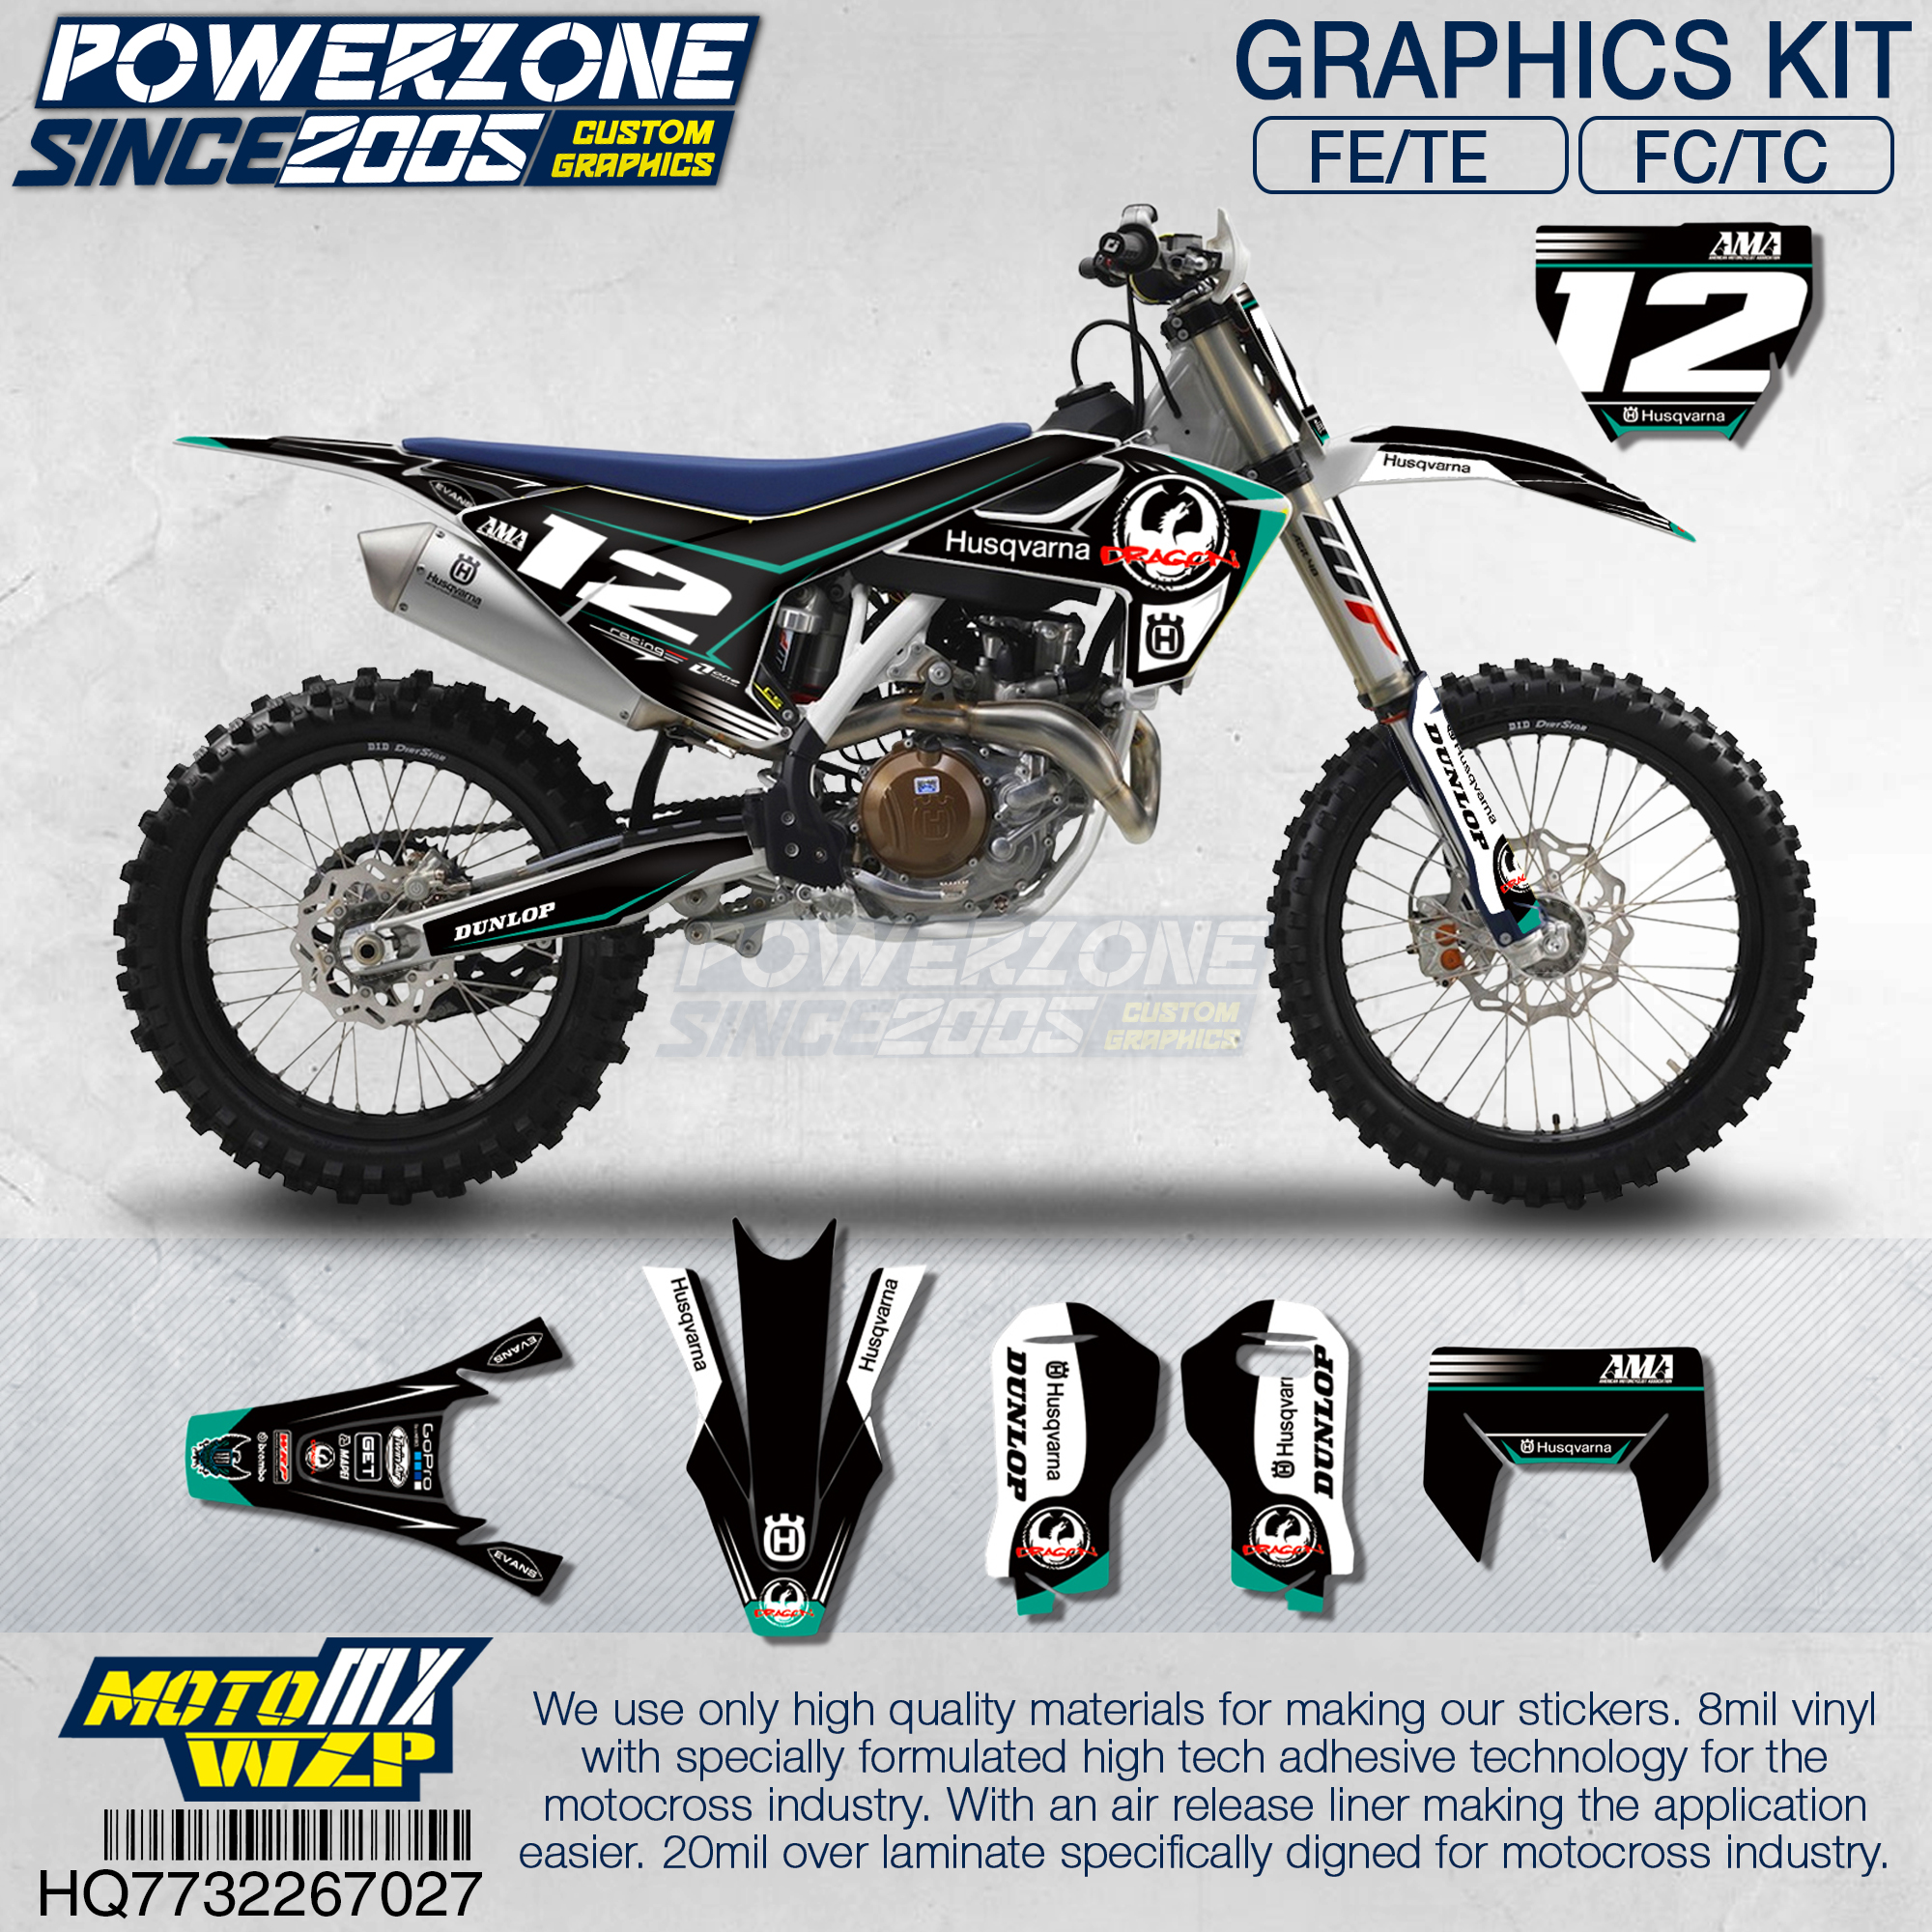 Customized Team Graphics Backgrounds Decals Custom Stickers Kit For Husqvarna 2014 15 16 17 18 FE